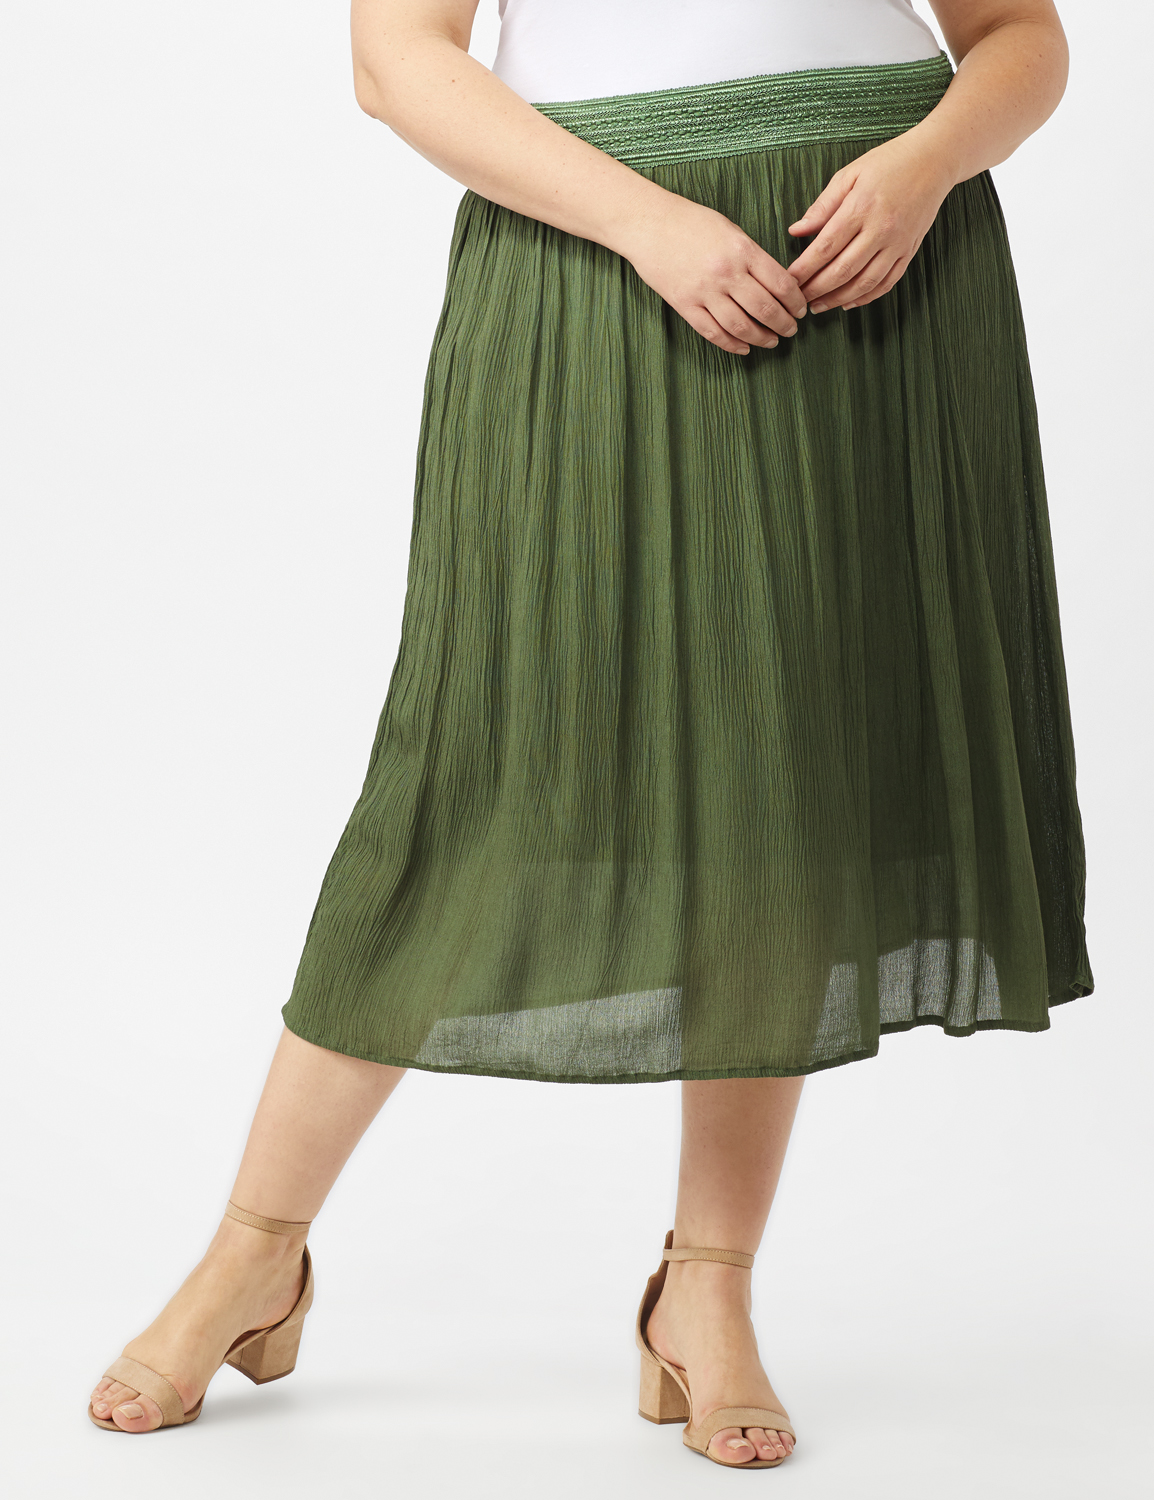 Rayon Gauze Pull On Skirt with Decorative Waistband -Olive - Front